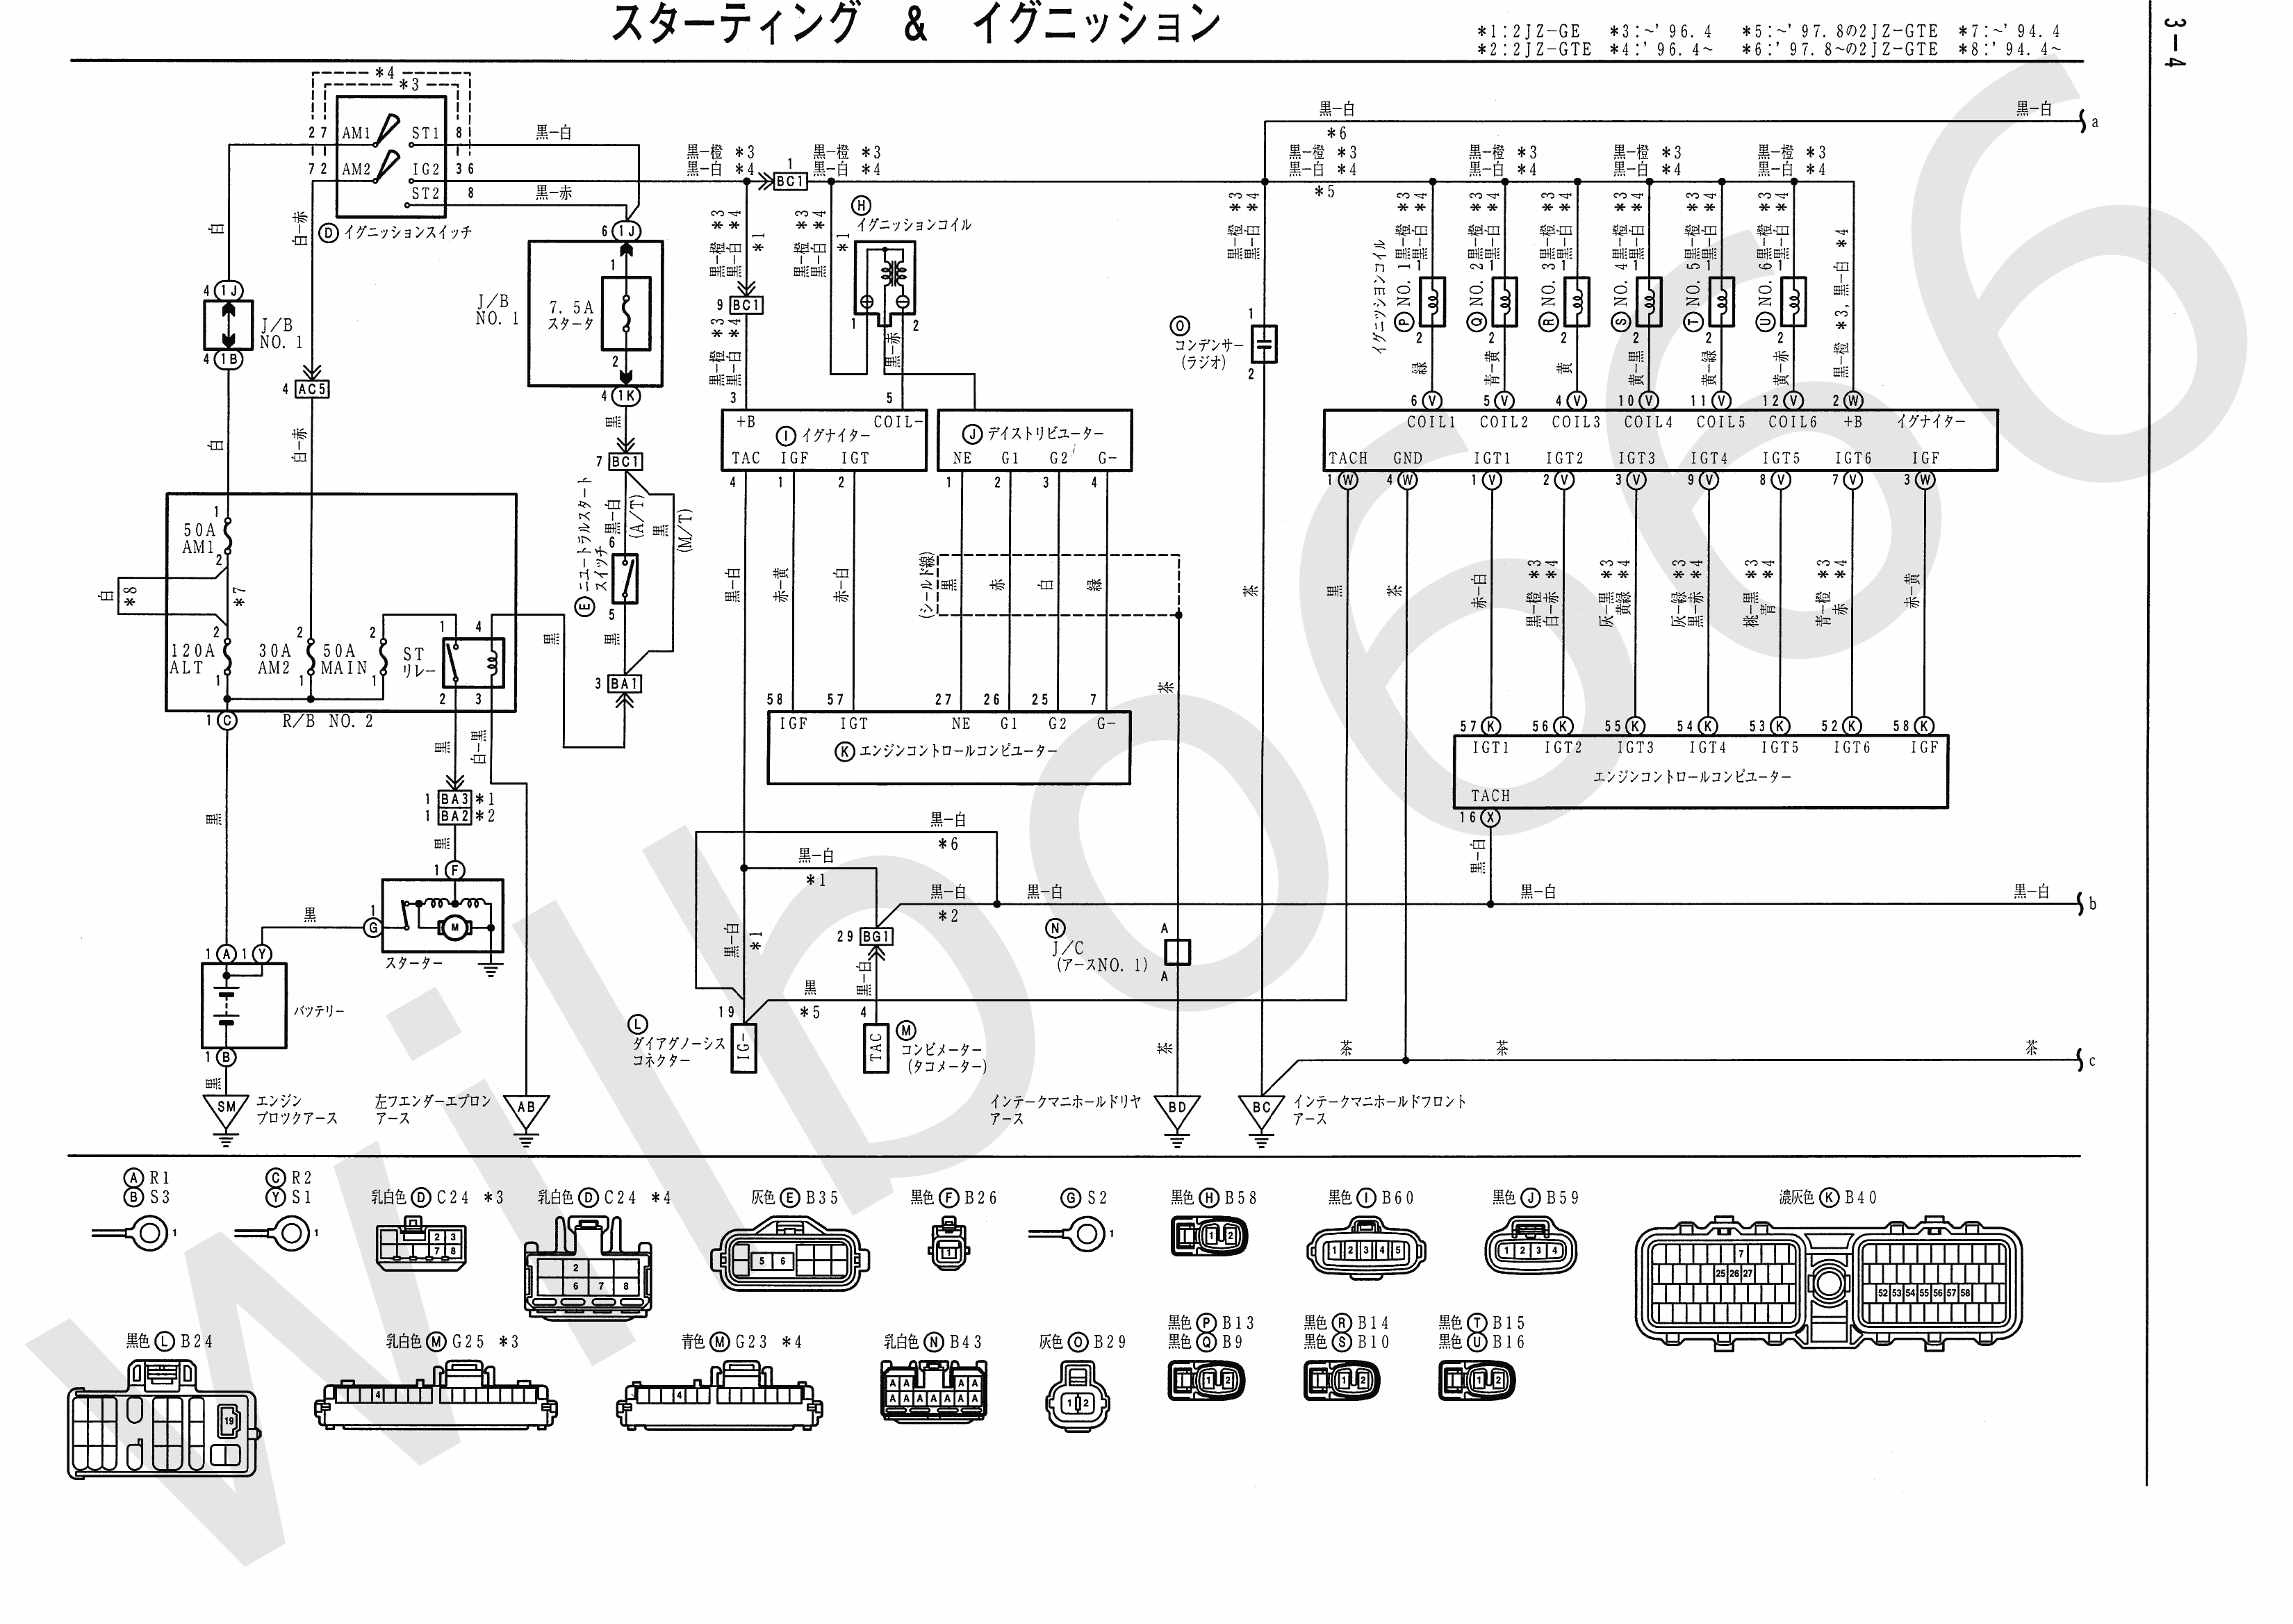 JZA80 Electrical Wiring Diagram 6742505 3 4 wilbo666 2jz ge jza80 supra engine wiring toyota highlander ecu wiring diagram at eliteediting.co